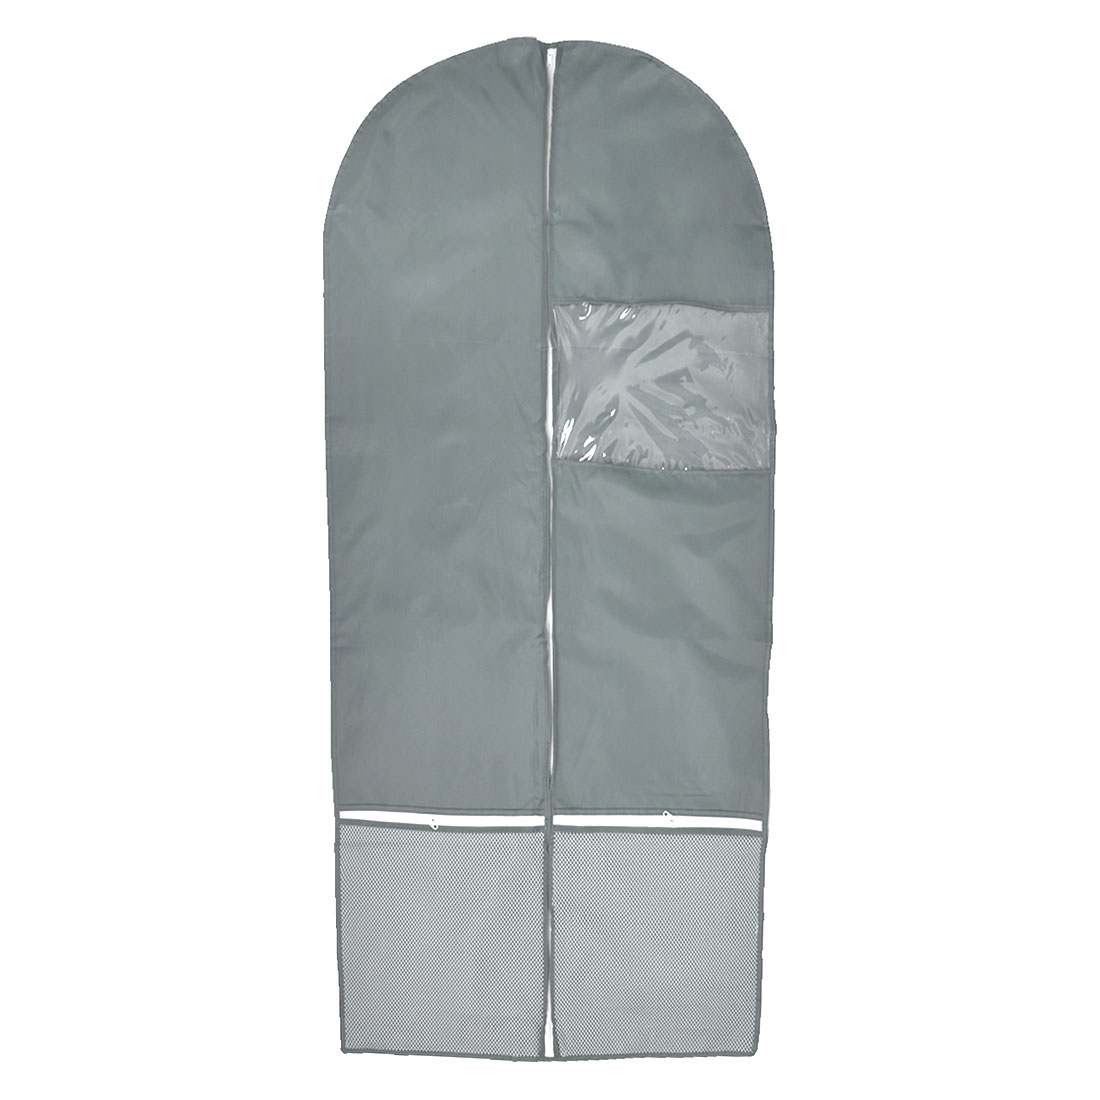 Household Travel Clothes Suit Dress Dustproof Cover Storage Protector Bag Light Gray